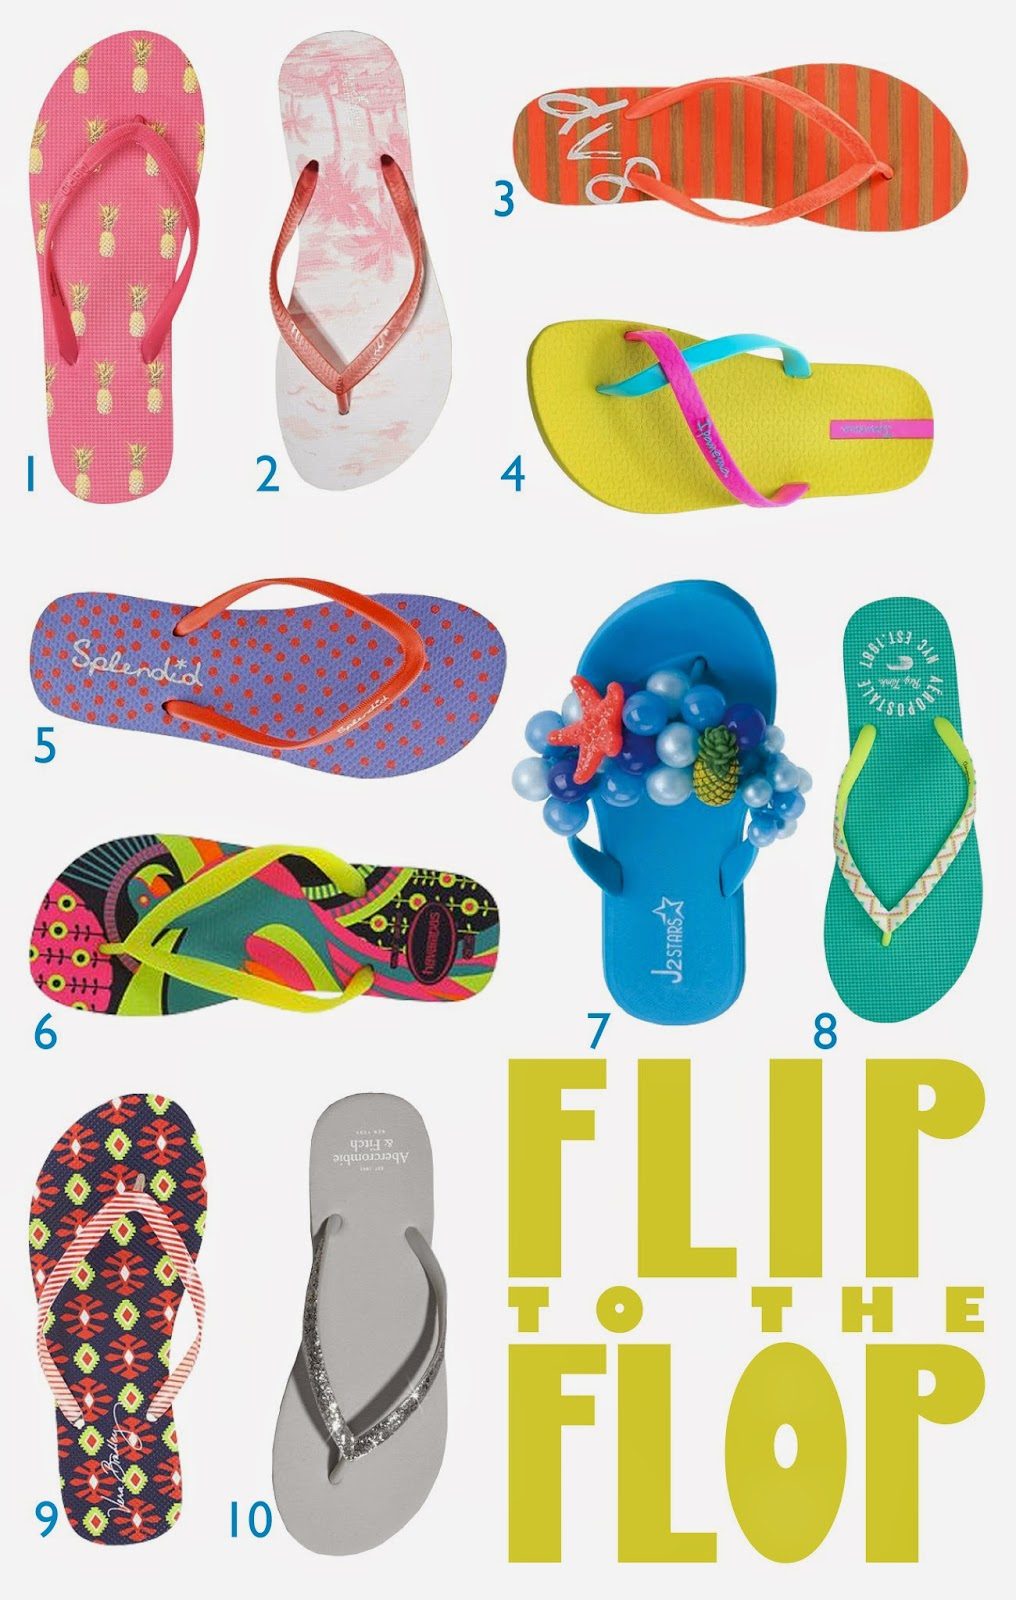 cute-flip-flops, shopping-for-flip-flips, thong-sandals